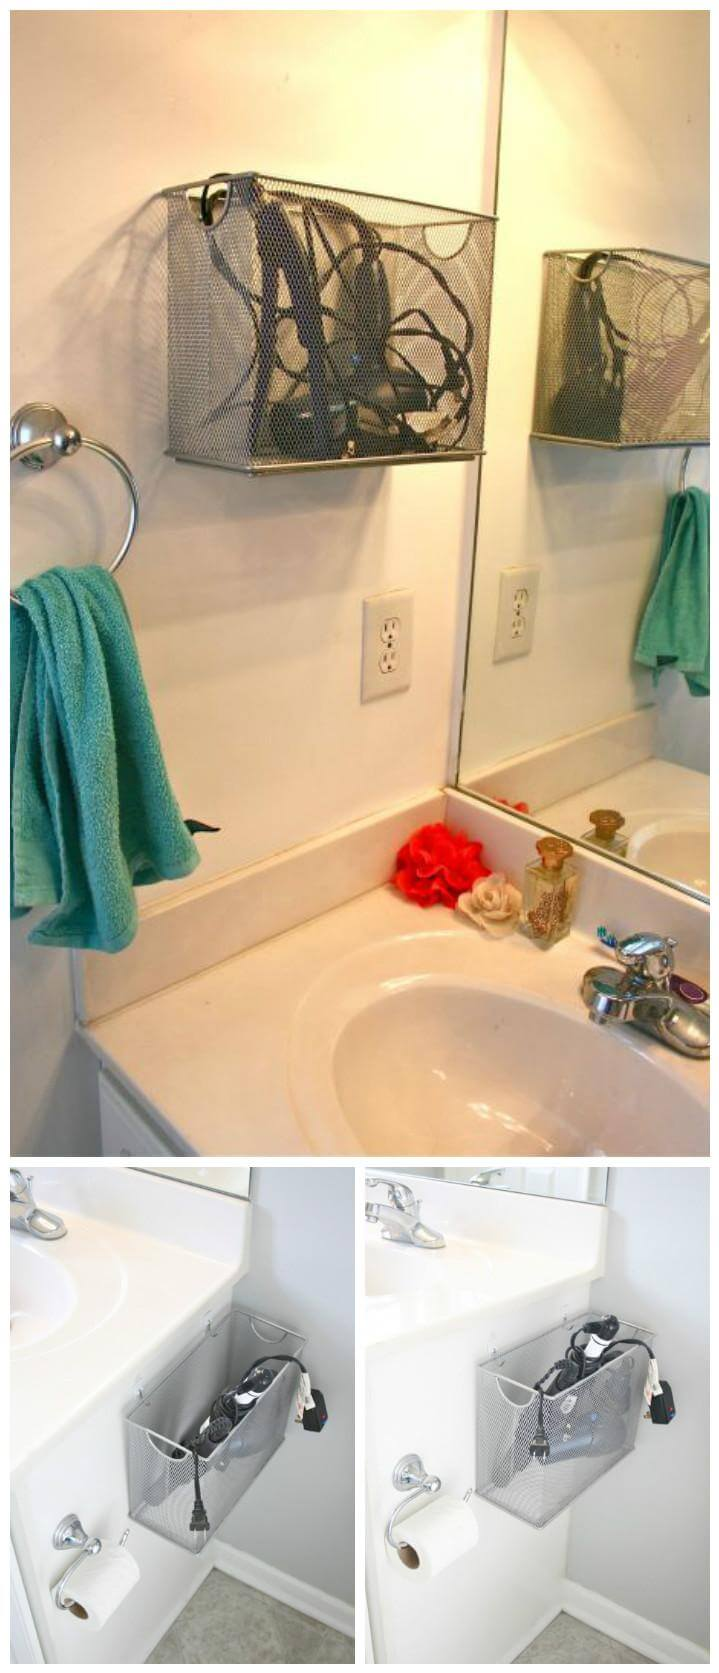 50 diy bathroom projects to remodel step by step page 6 of 6 diy